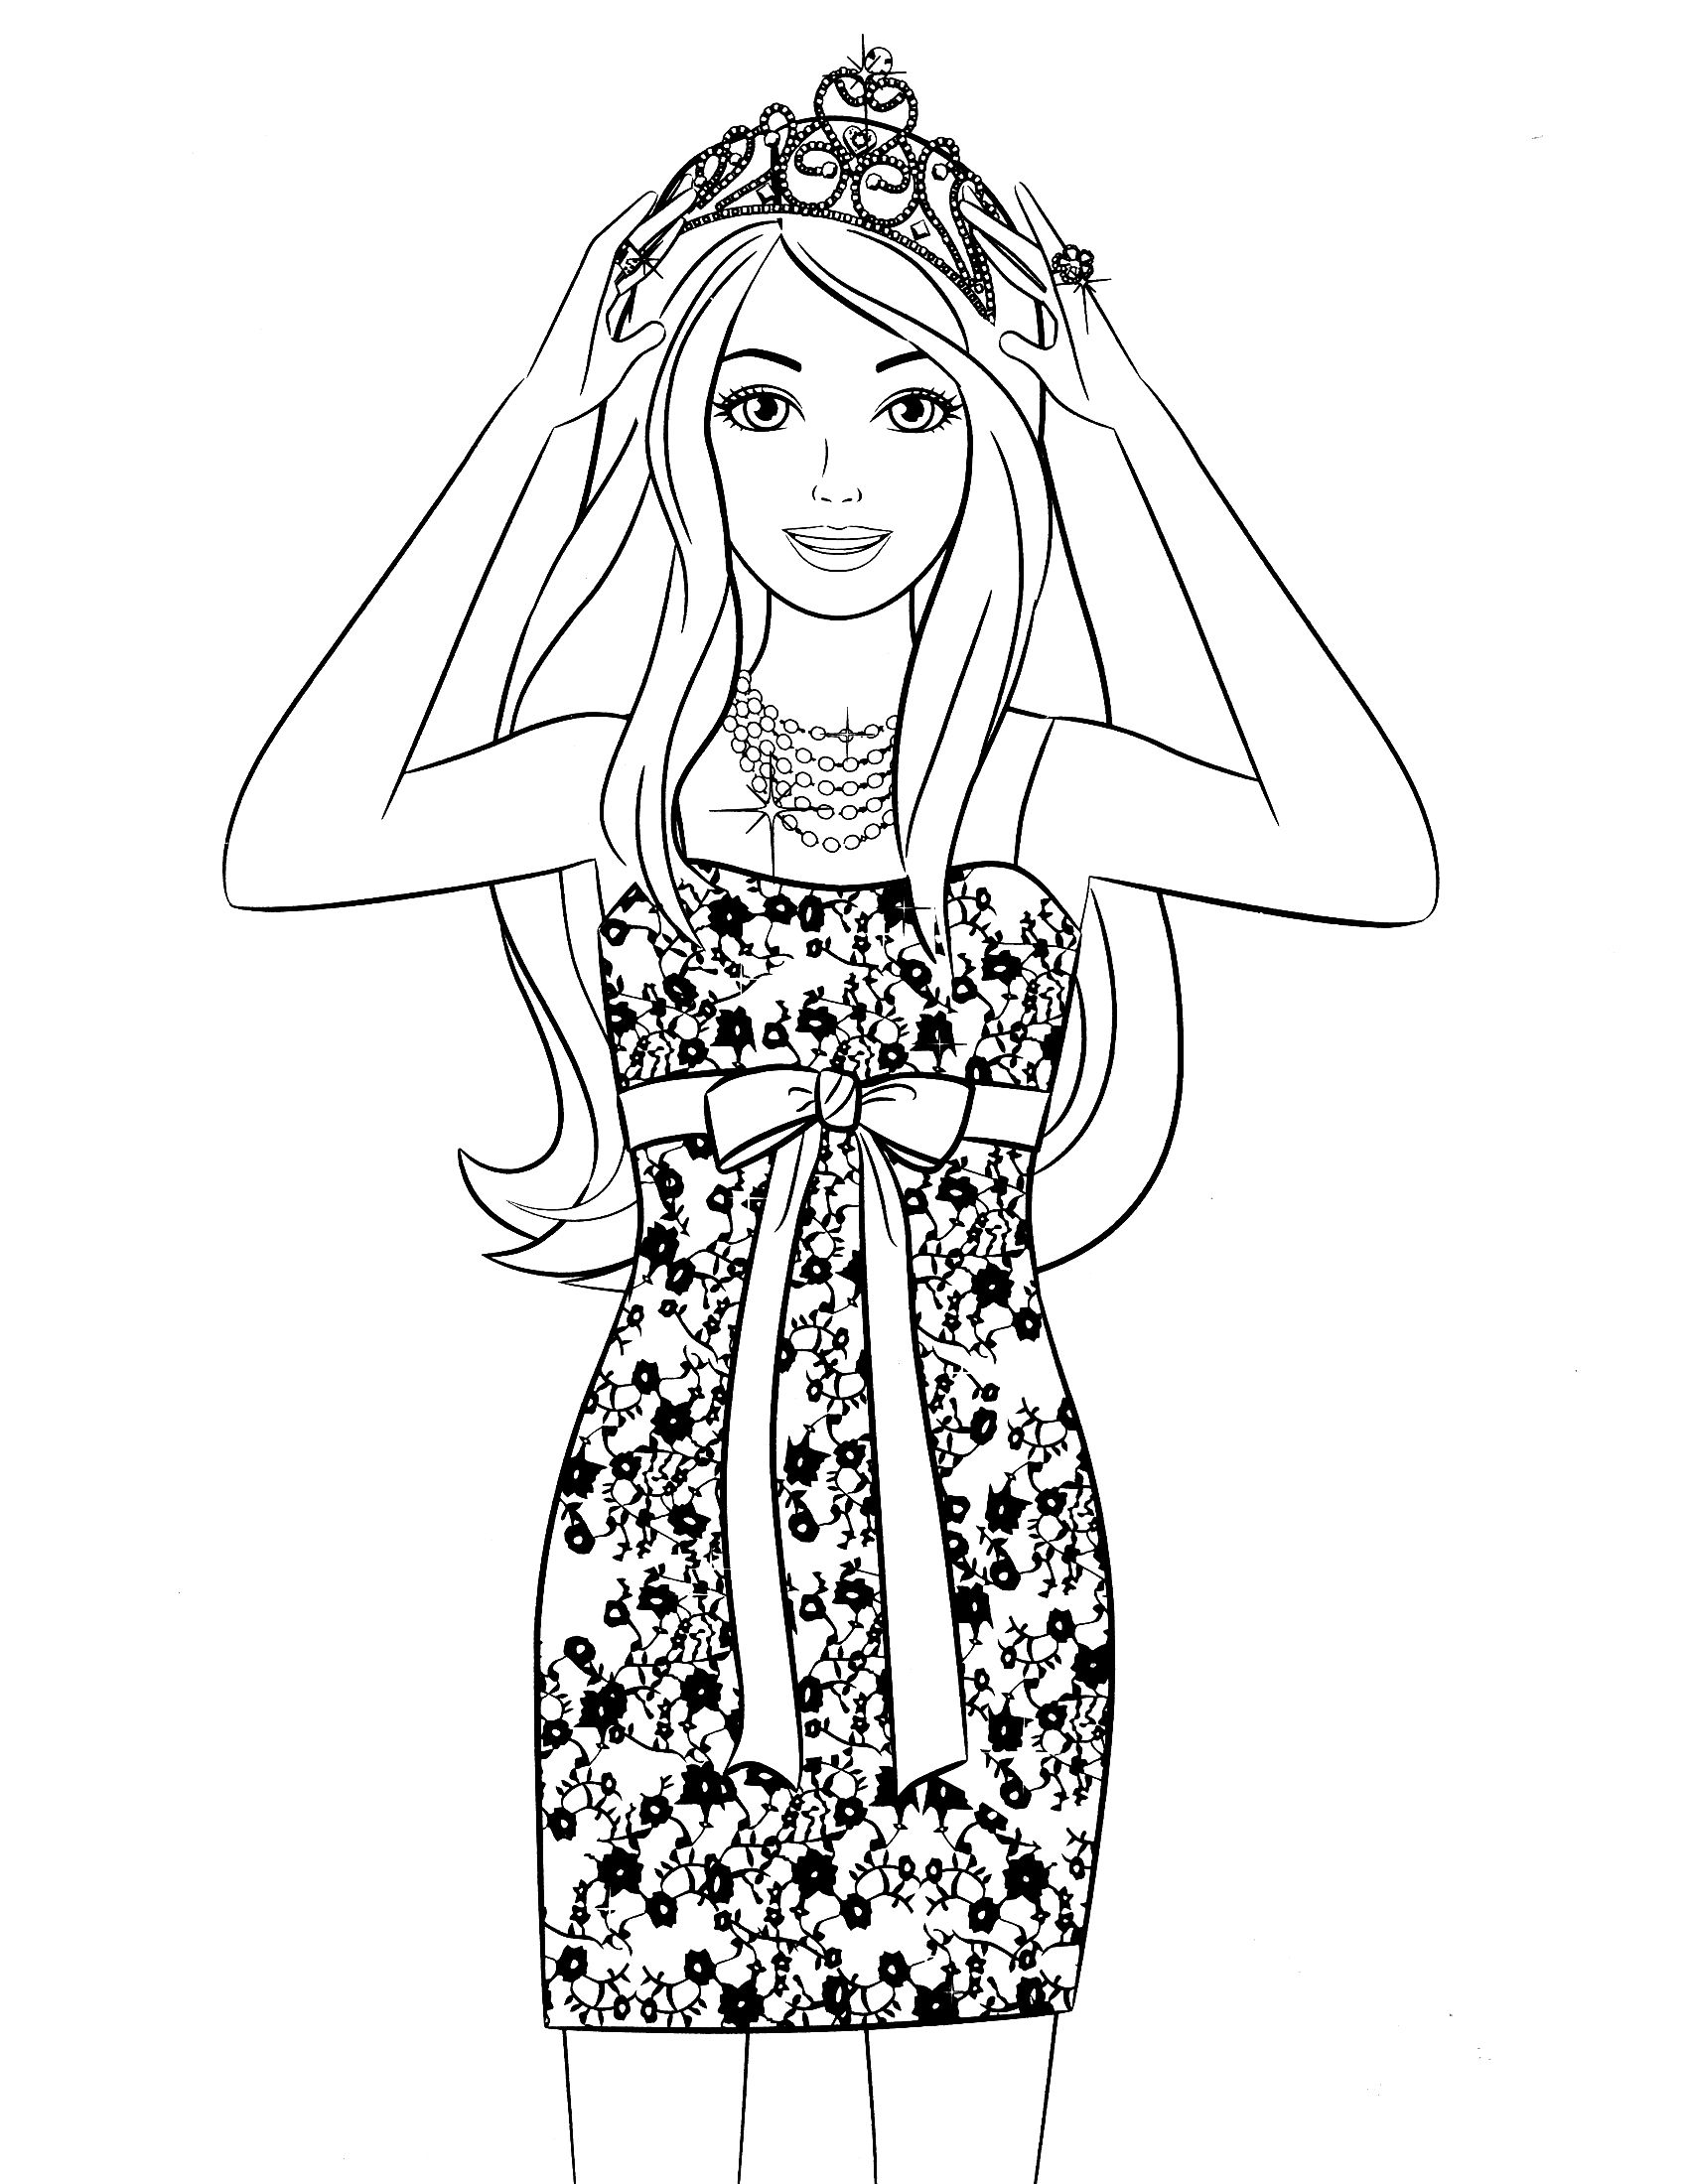 Barbie Girl Coloring Pages Nice Coloring Pages For Kids Free - barbie coloring pages that you can color online